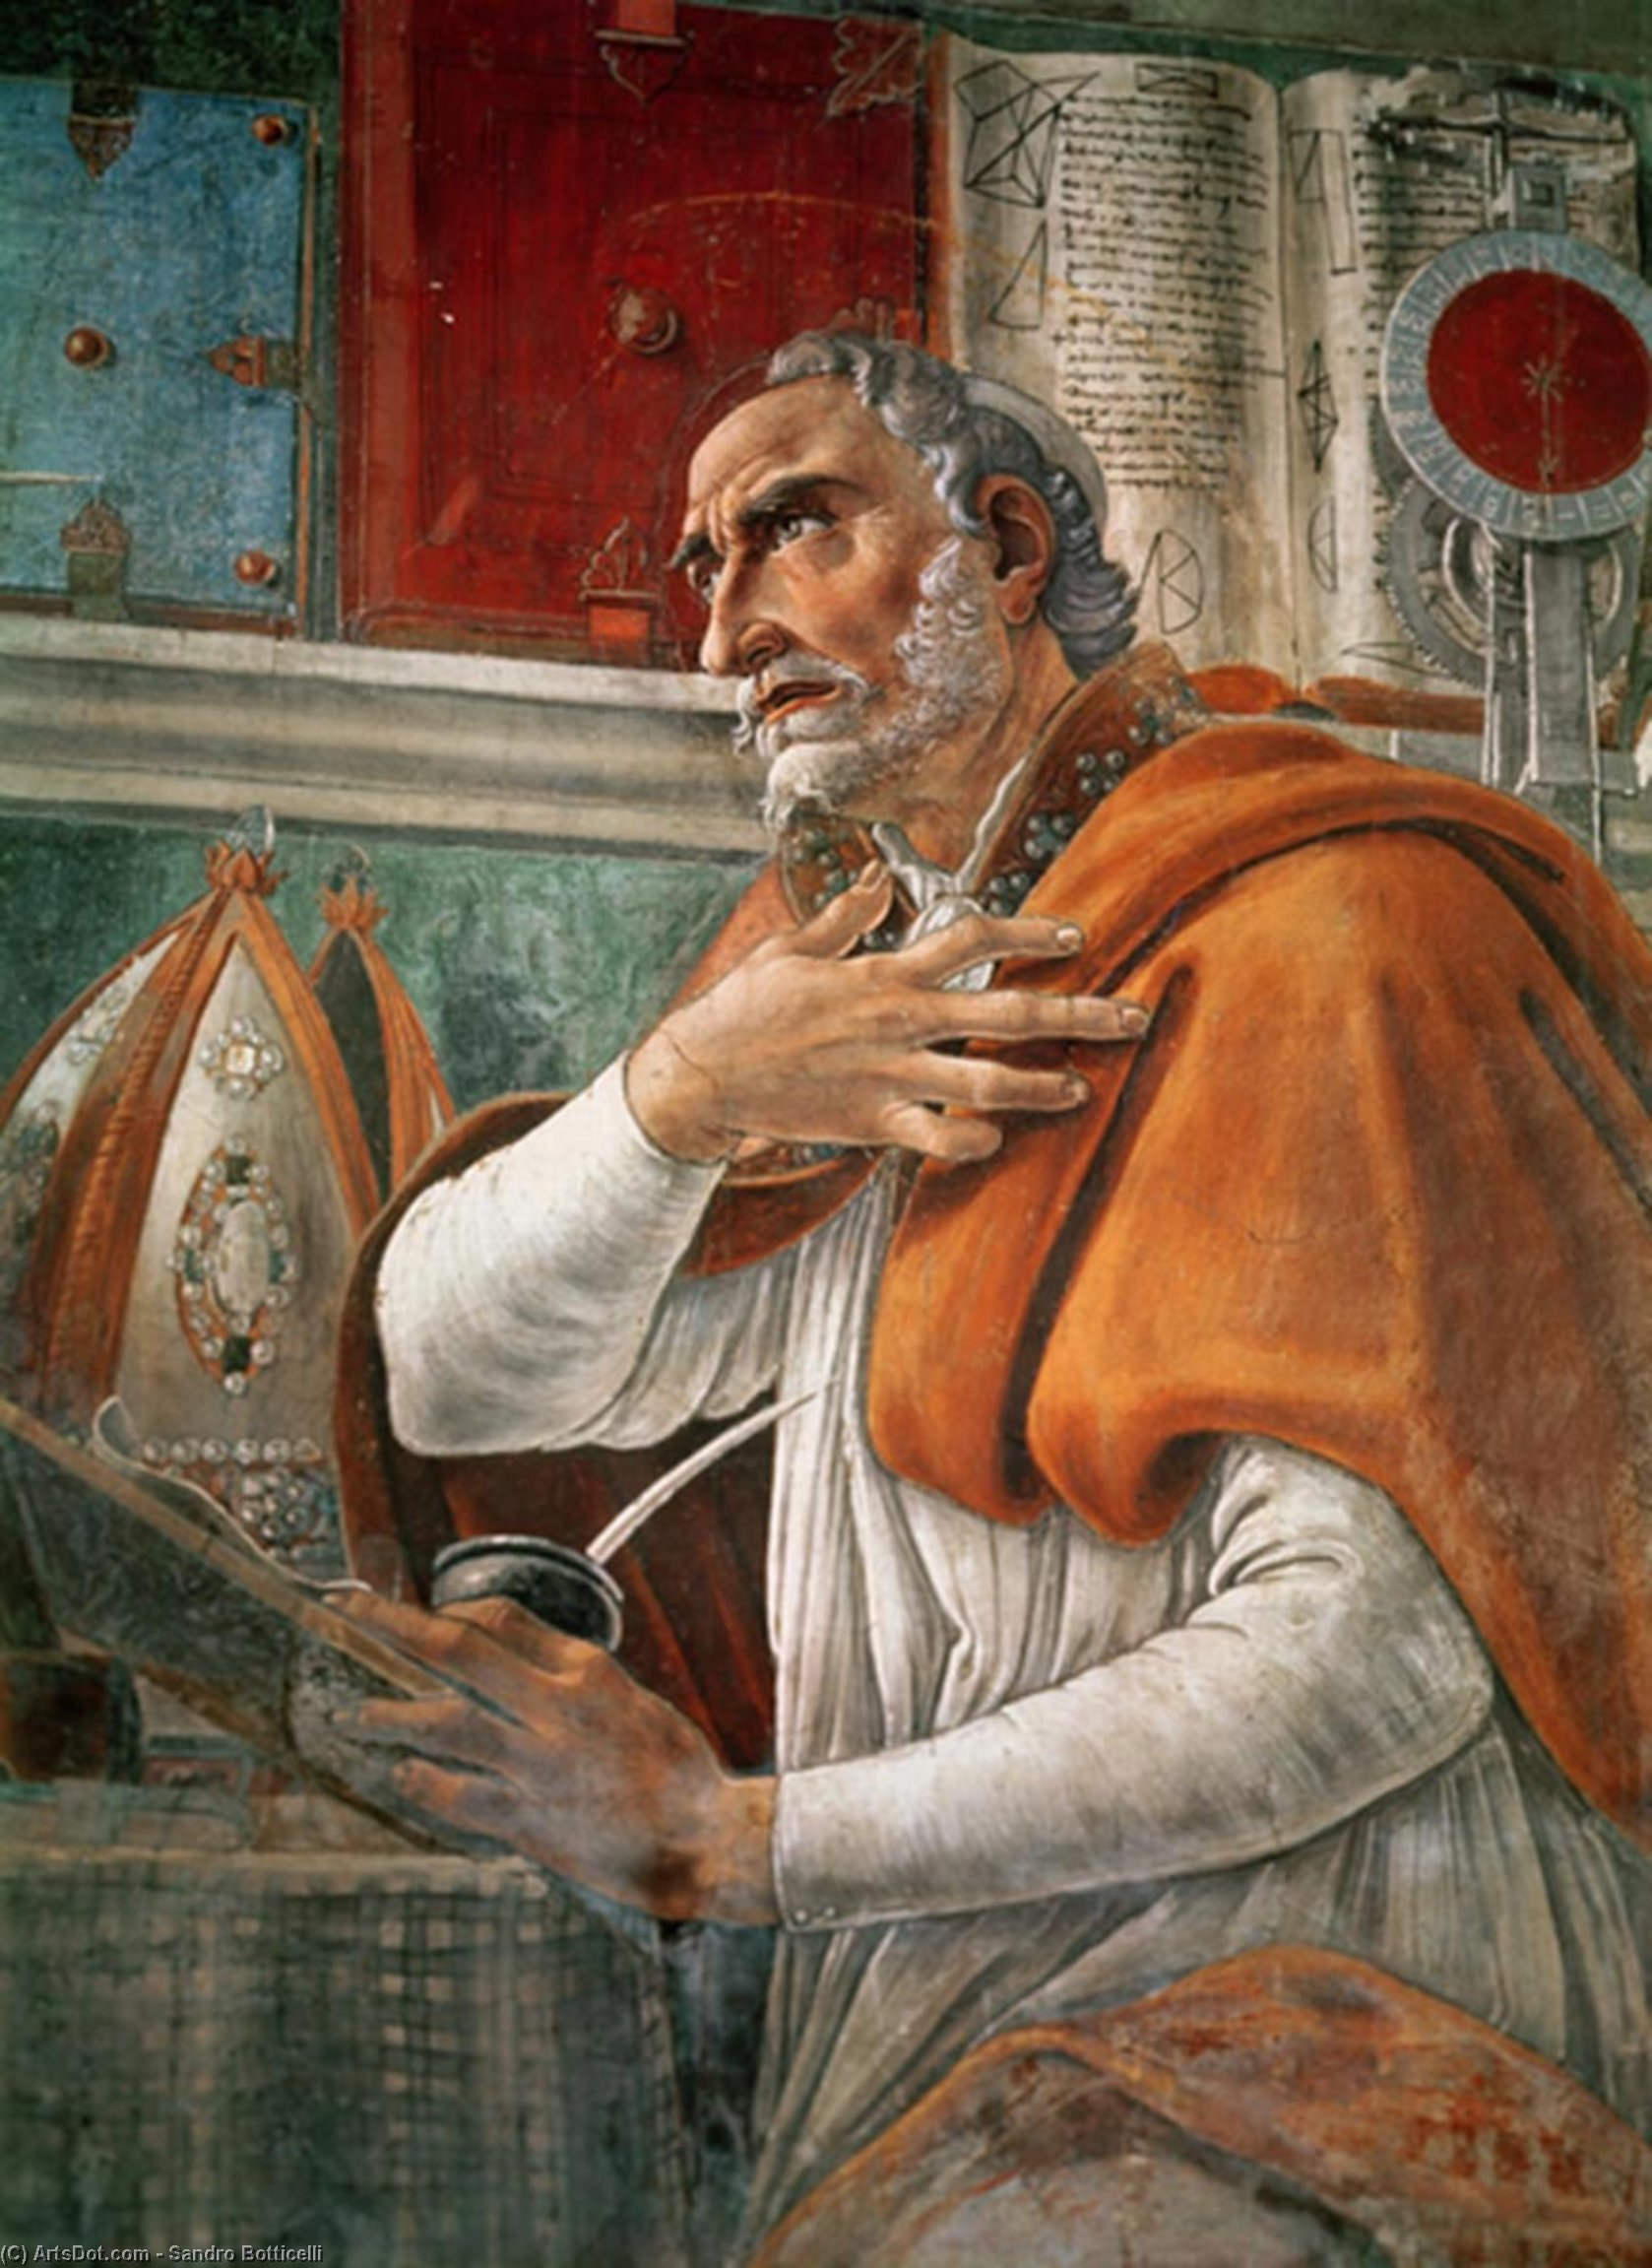 st augustine political philosophy Augustine's concept of politics - augustine's concept of politics for augustine, political life is a [tags: st augustine confessions philosophy essays.